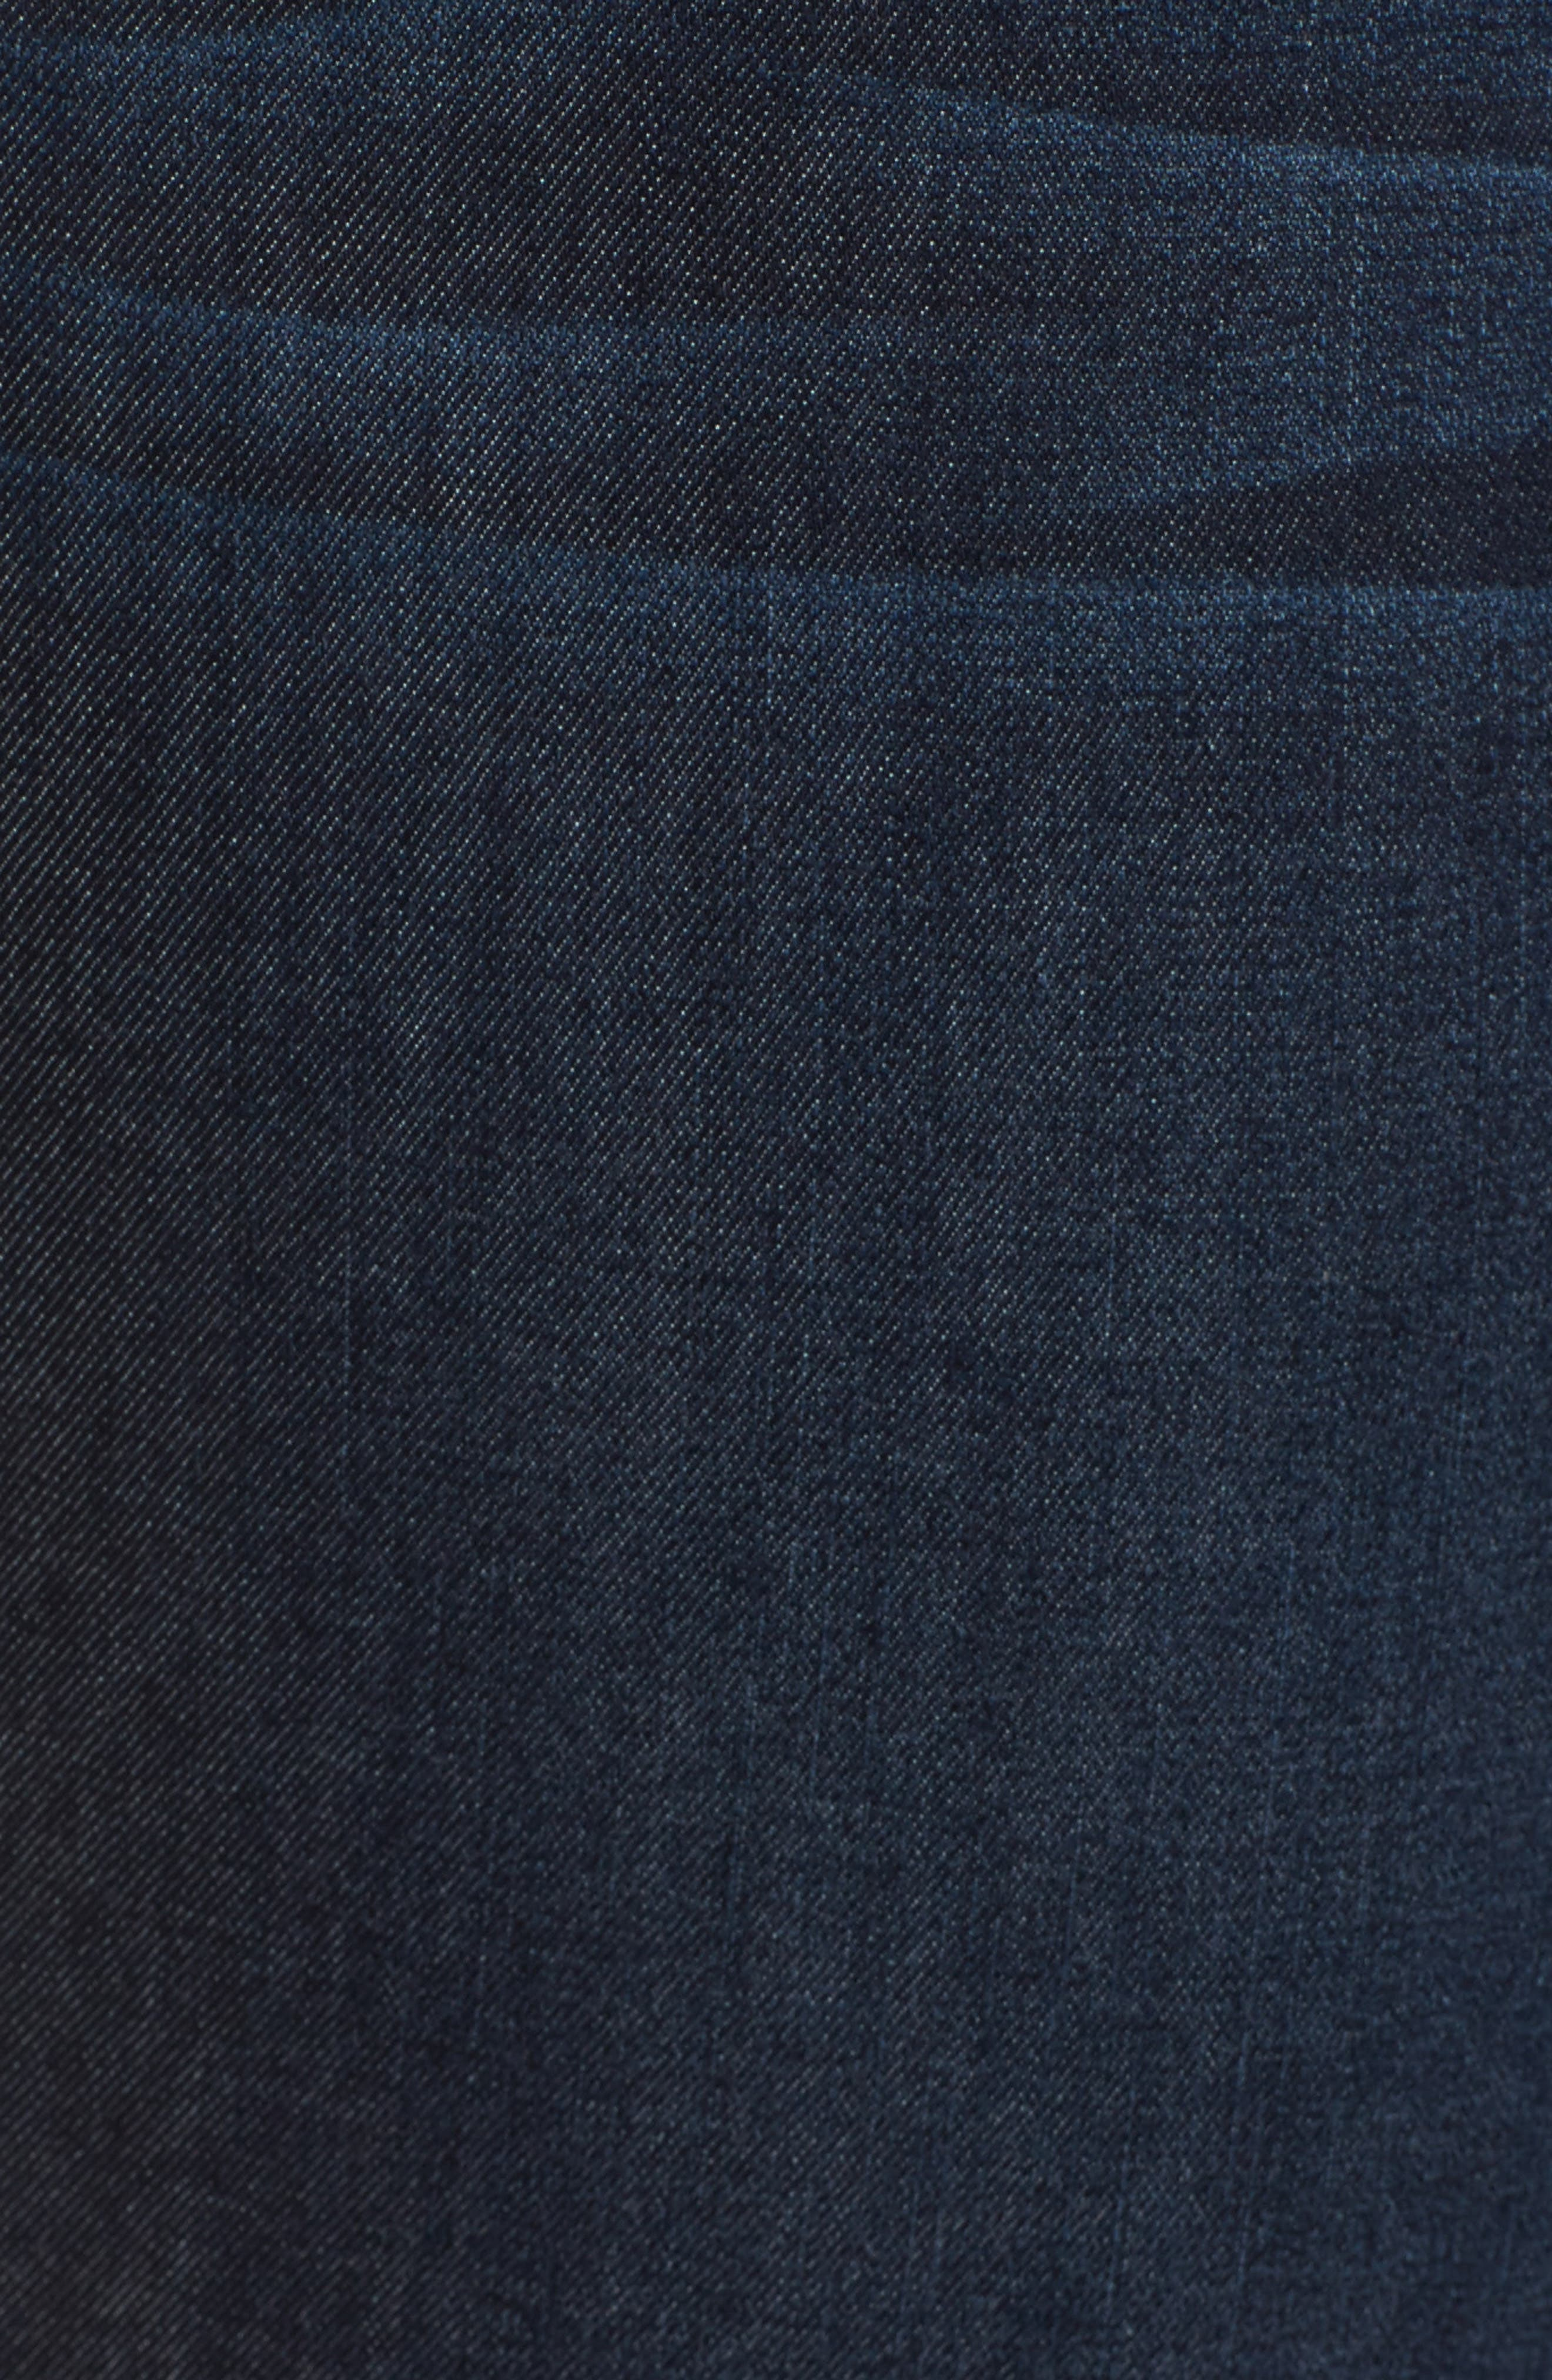 Alternate Image 5  - Wit & Wisdom Ab-solution Ankle Skimmer Jeans (Plus Size) (Nordstrom Exclusive)